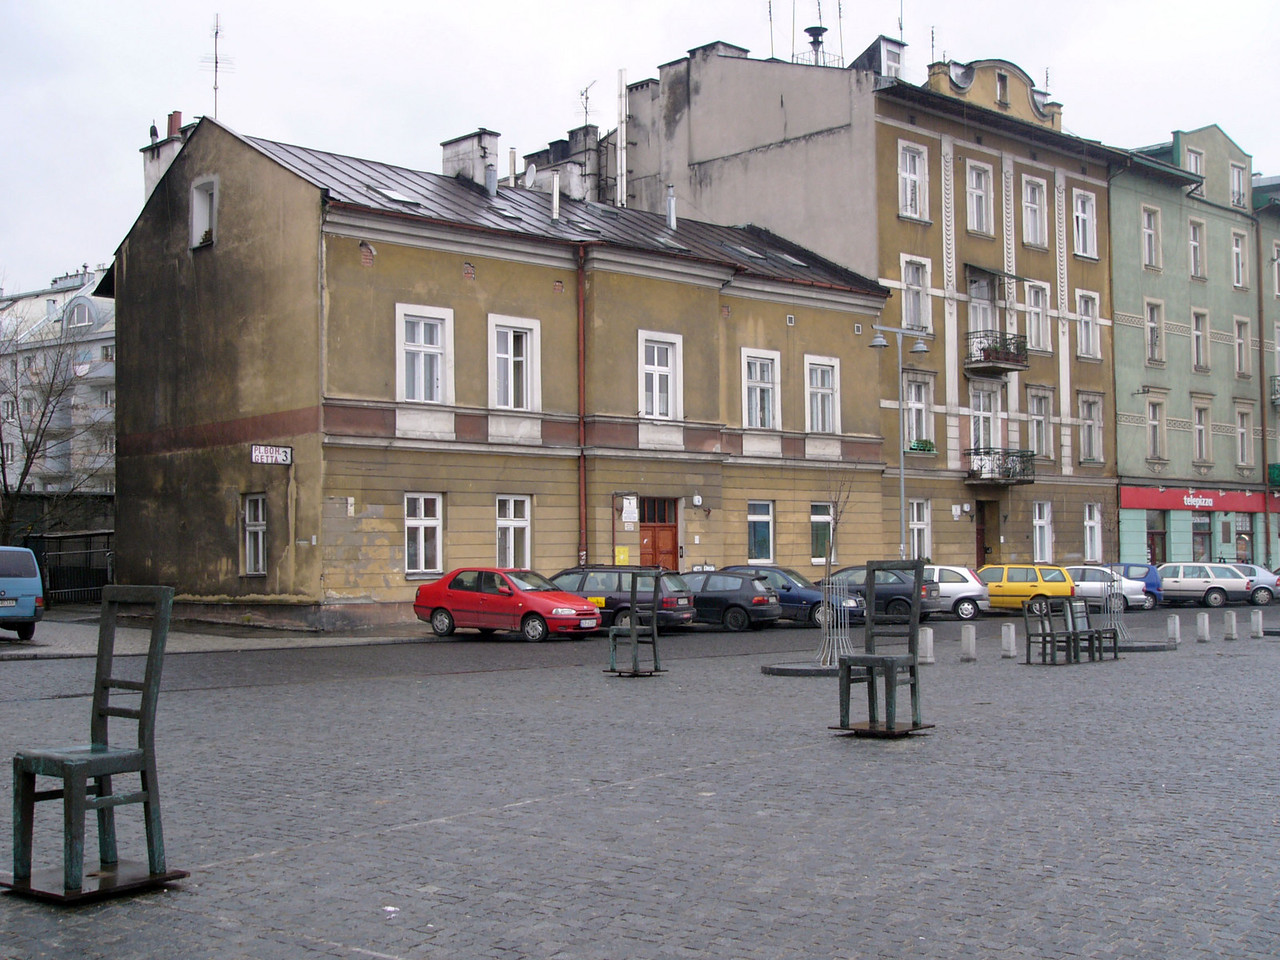 The edge of the Krakow ghetto, where Jews were relocated from the Jewish quarter